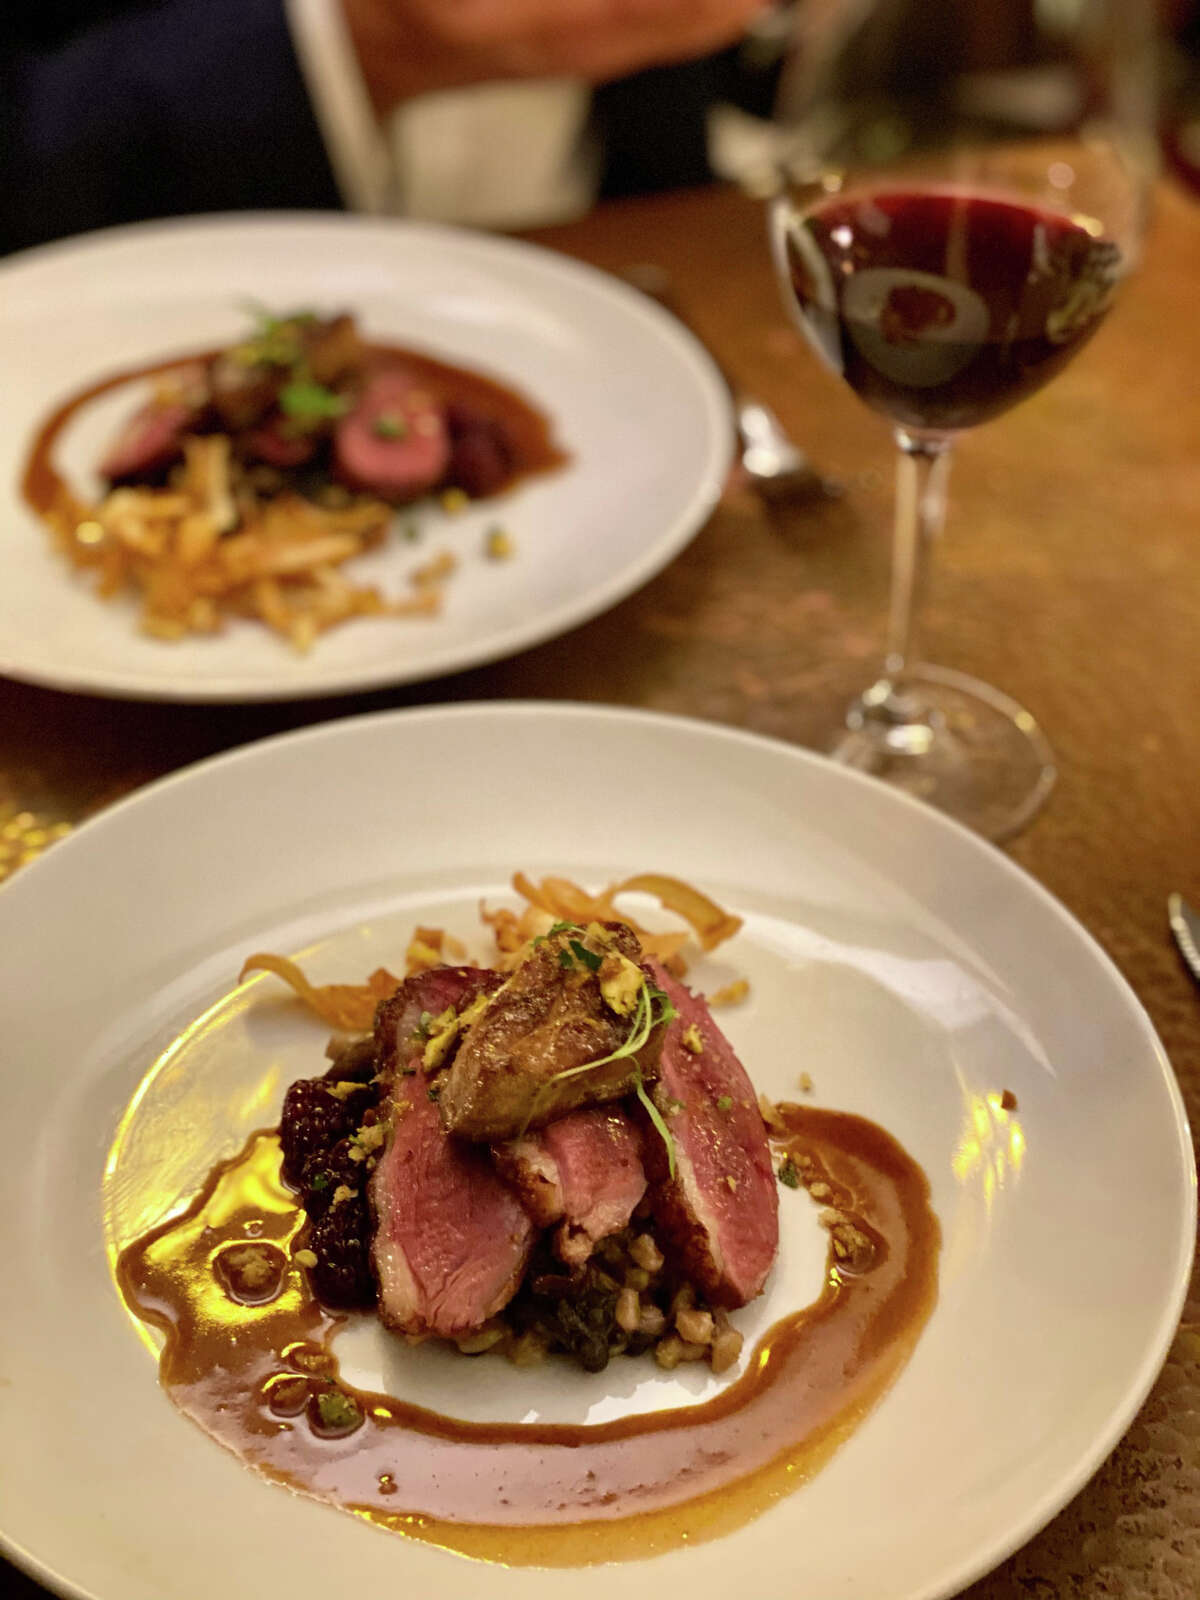 A duck duo features searedbreastwith foie gras as part of the seven-course tasting menu at Jack's Oyster House in Albany. (Susie Davidson Powell for the Times Union.)